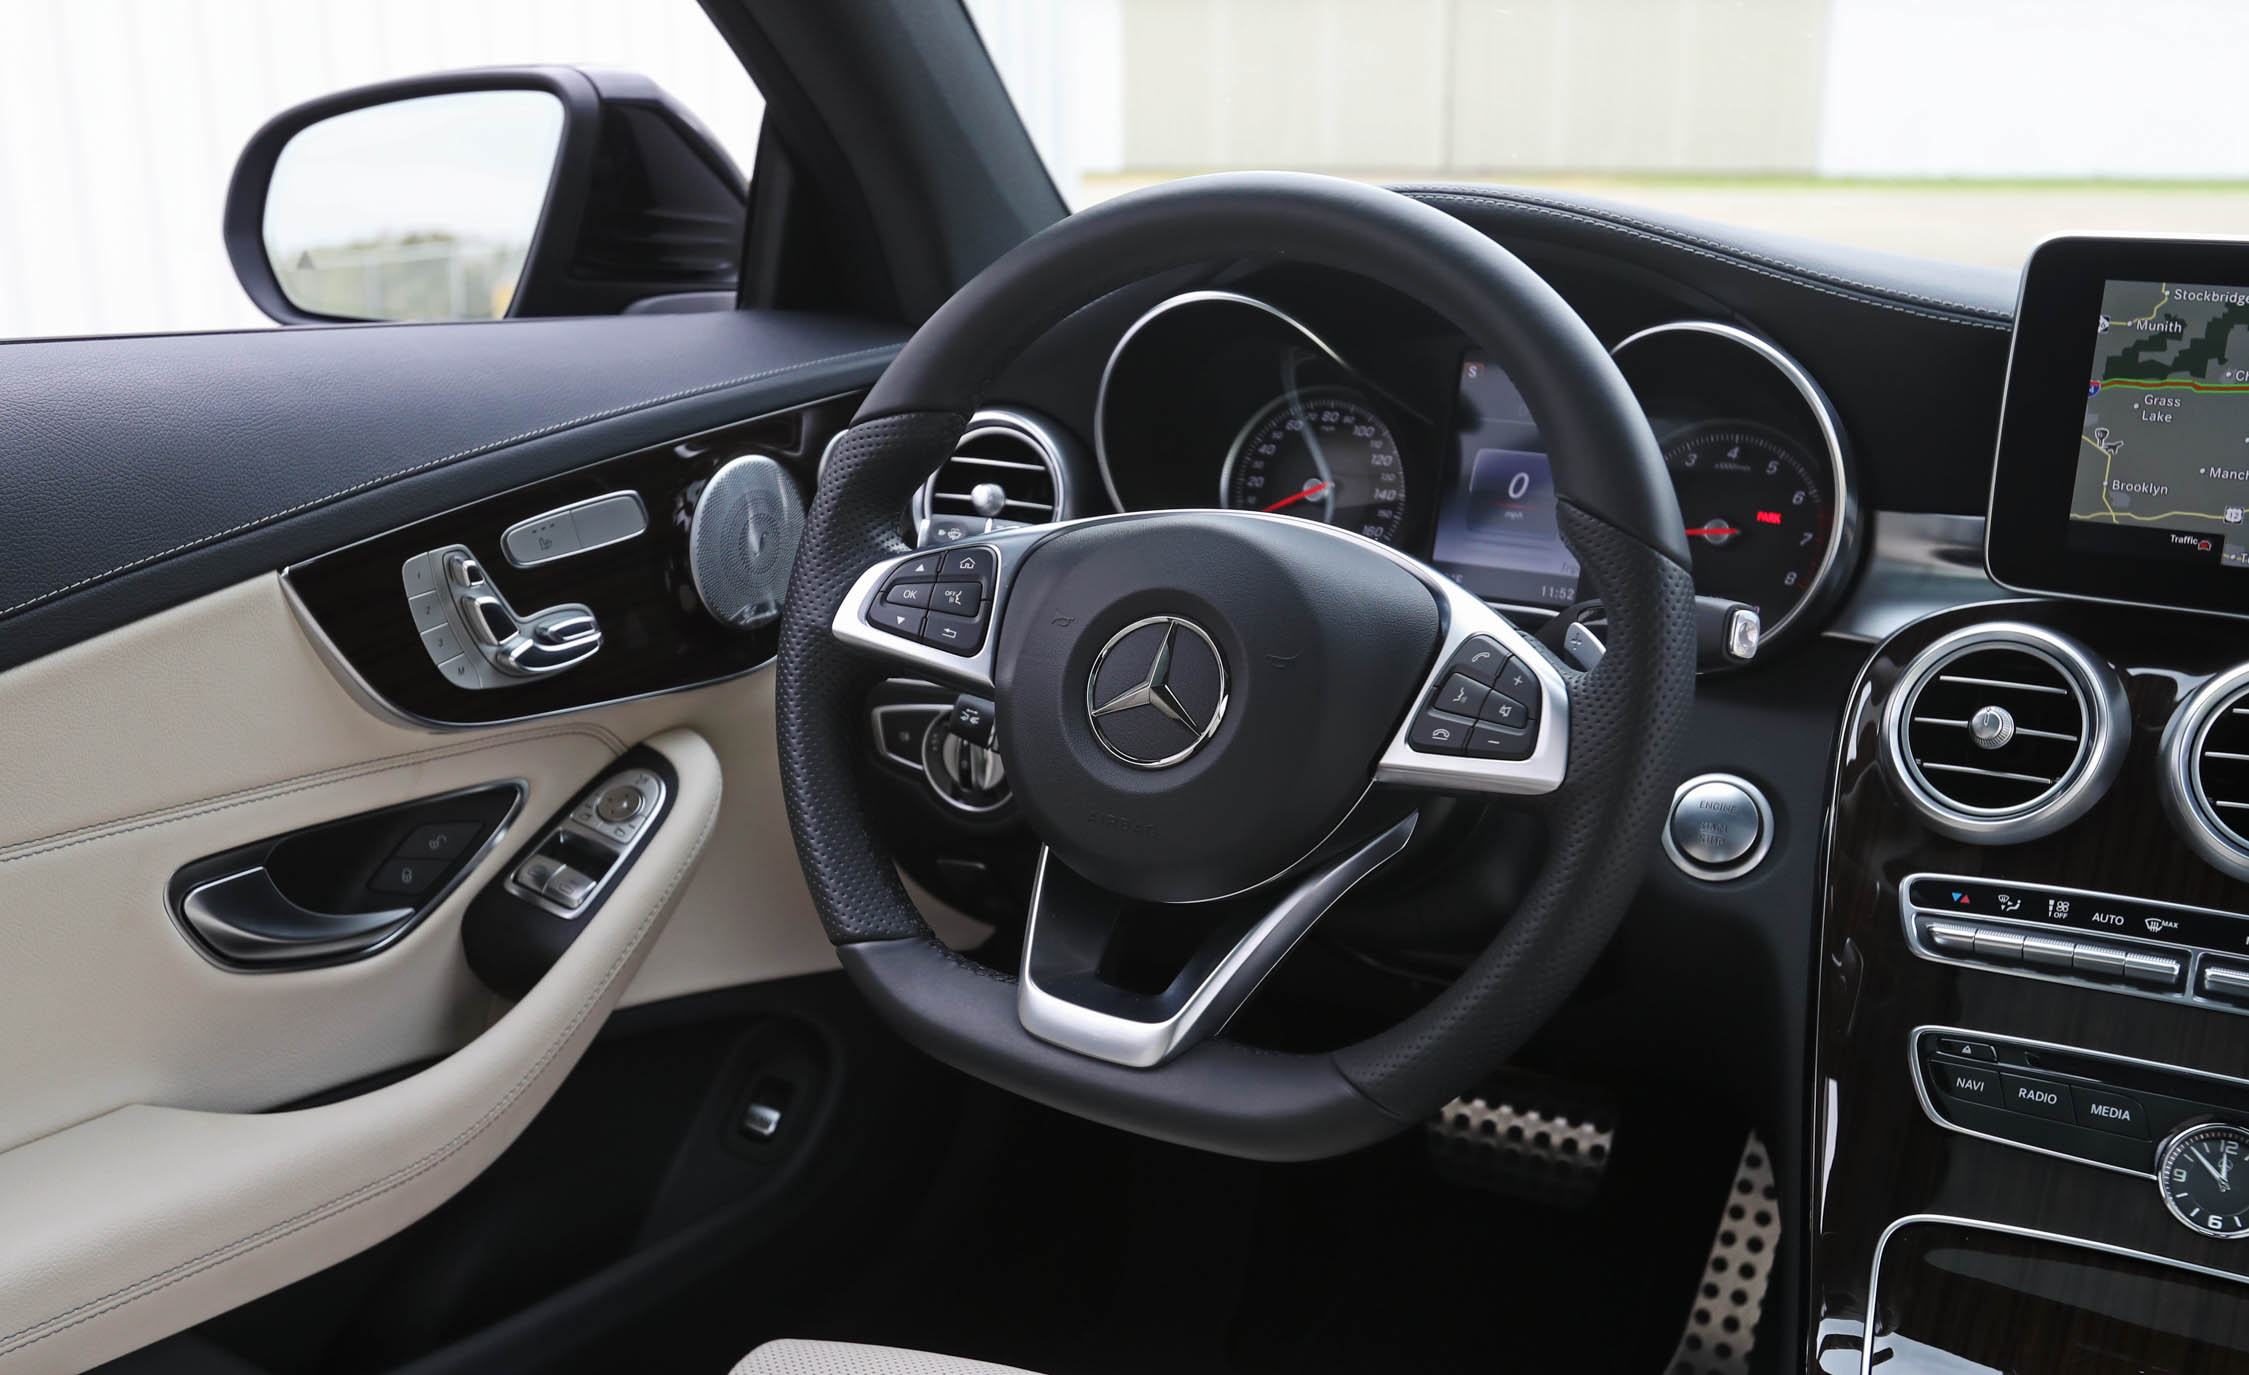 2017 Mercedes Benz C300 4MATIC Coupe Interior View Steering Wheel (View 15 of 44)